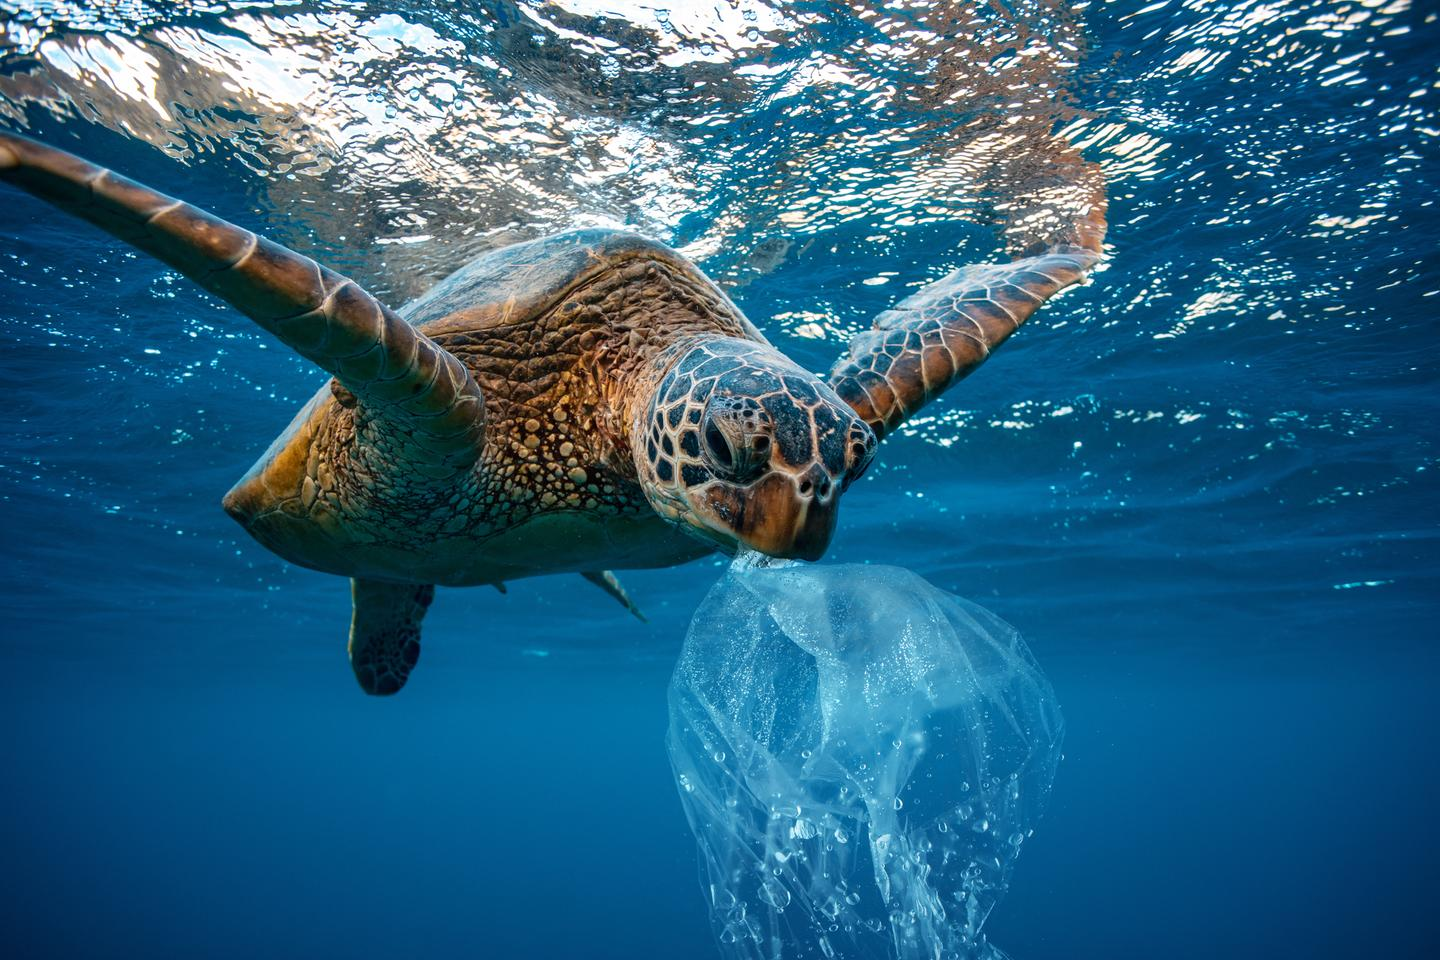 A new study has calculated the typical size of plastic waste different animals are able to consume